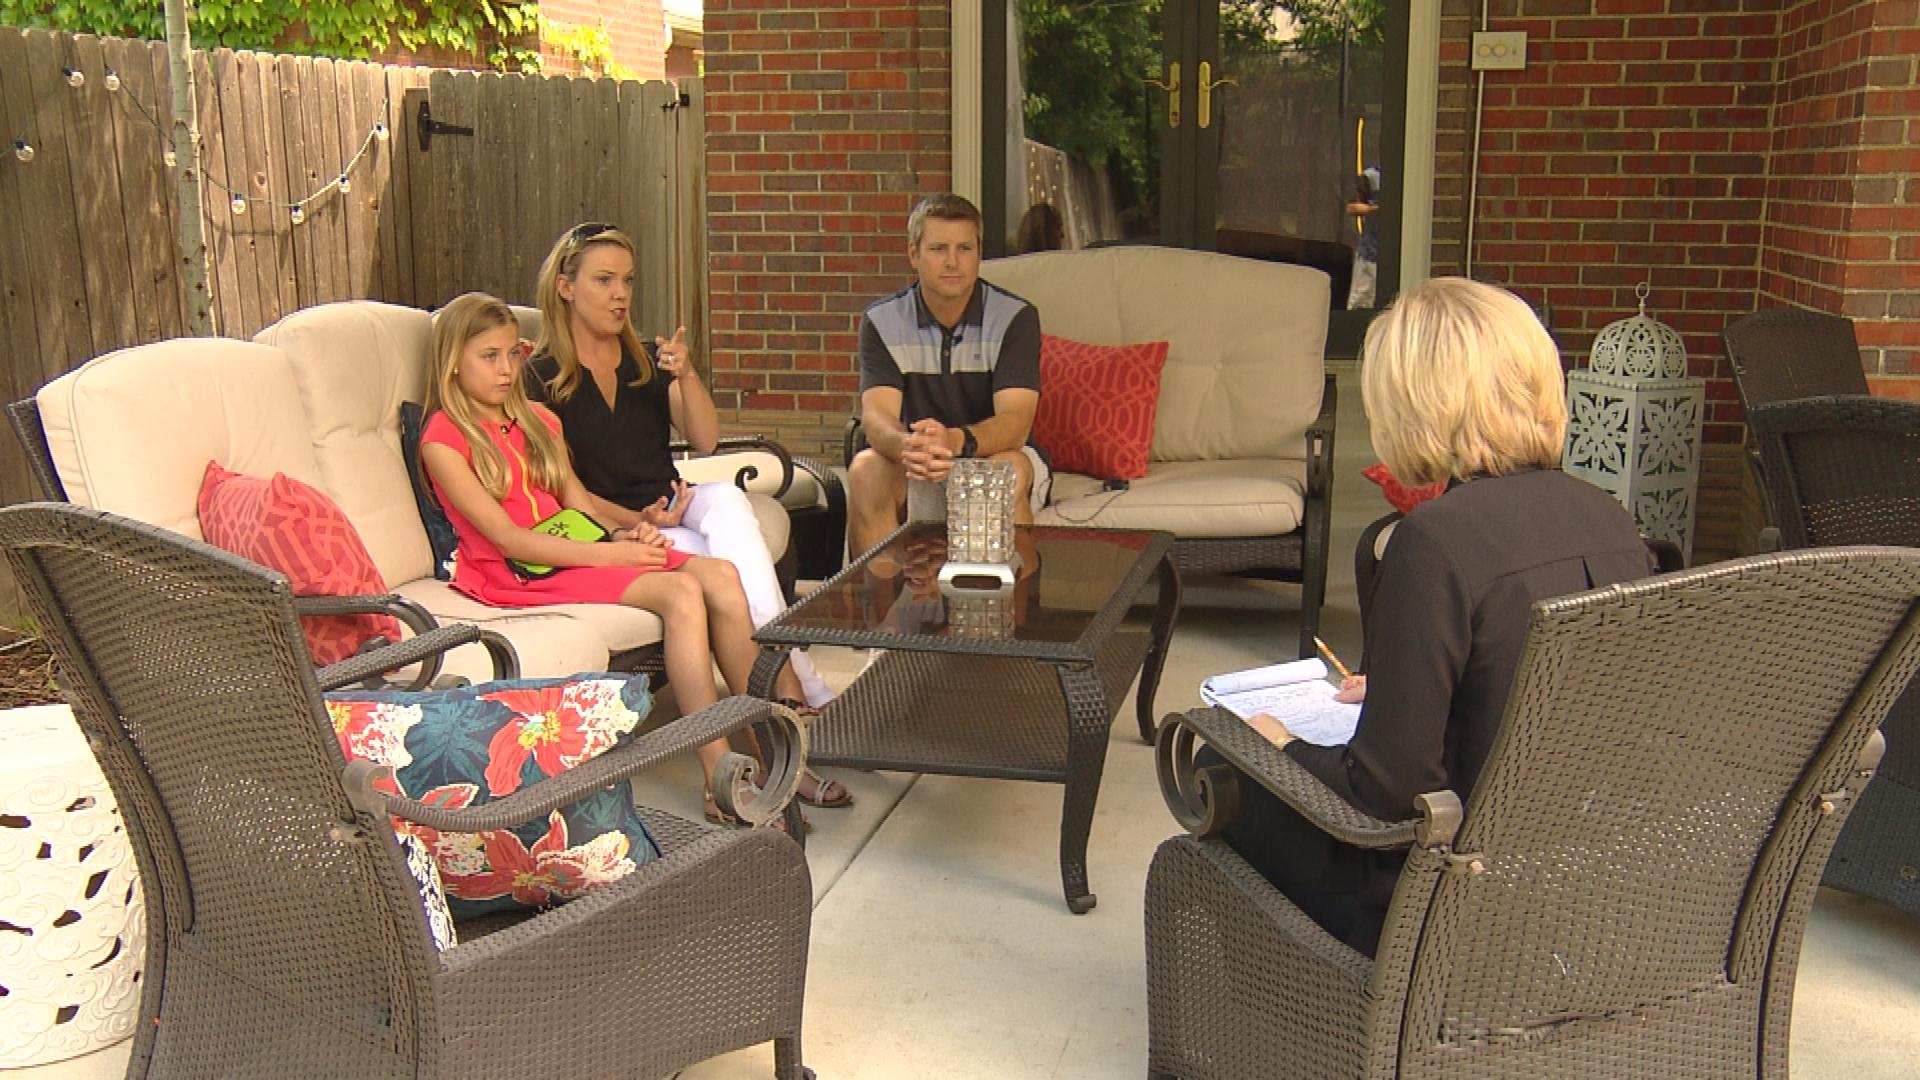 The Goodreau family is interviewed by CBS4's Kathy Walsh (credit: CBS)